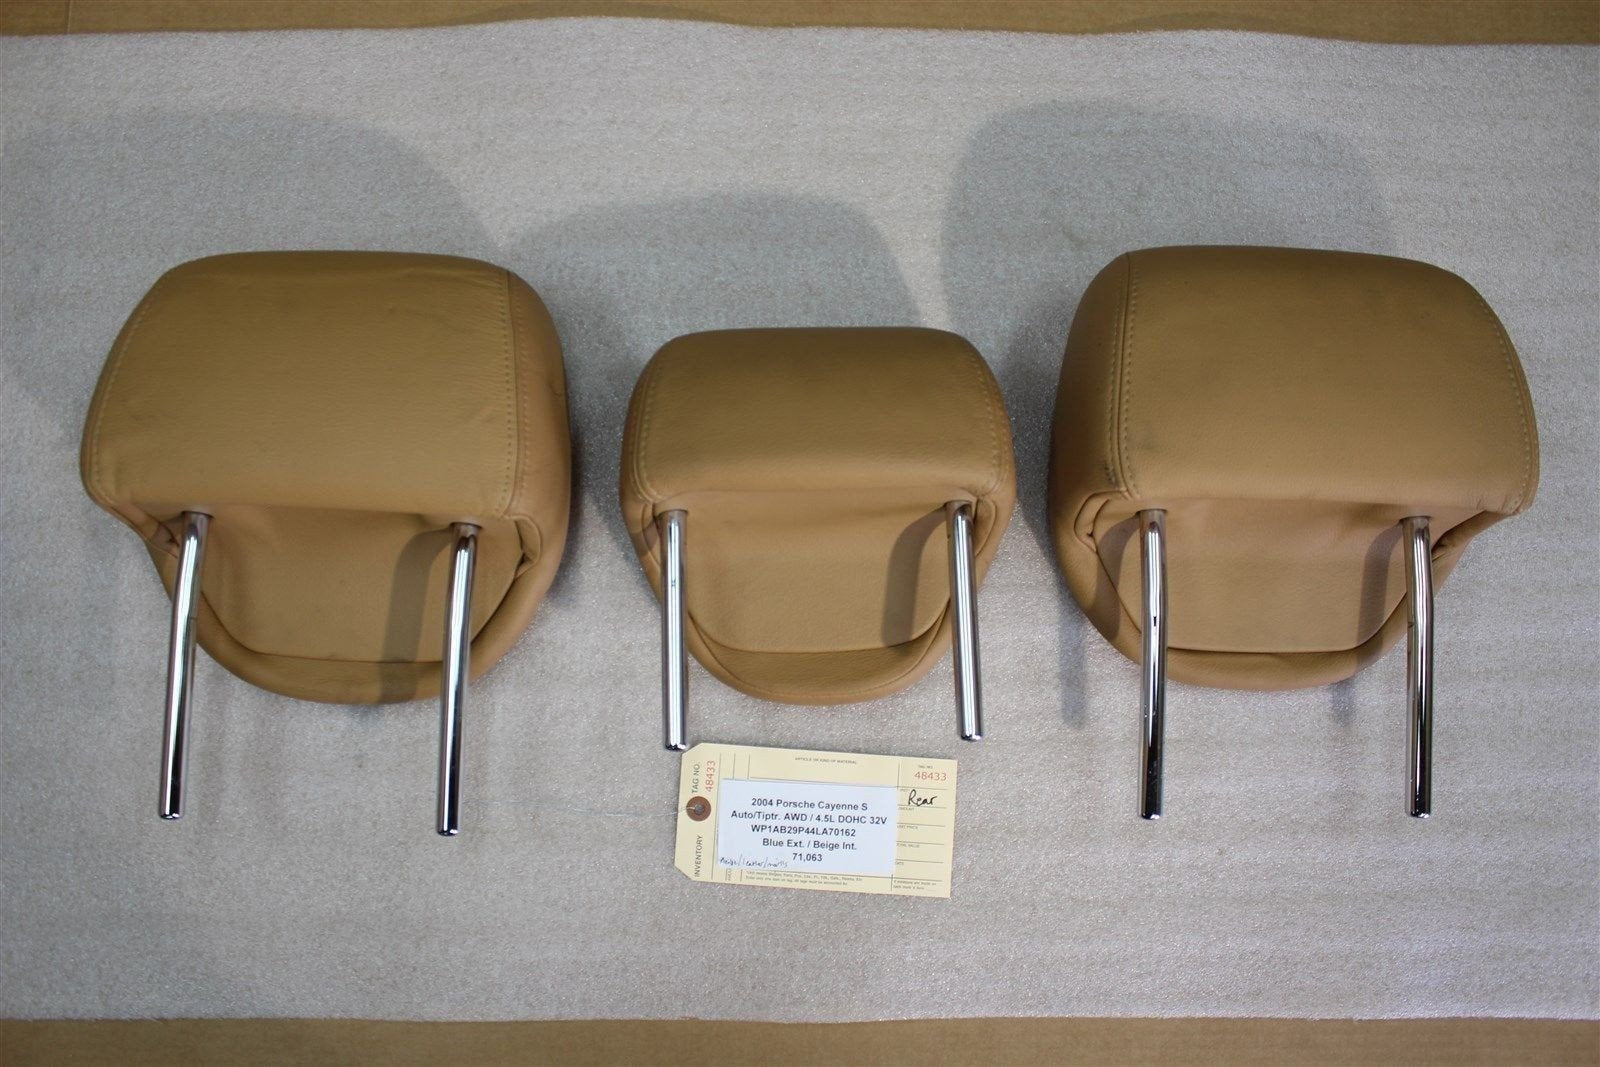 04 Cayenne S Porsche 955 Beige 3 Leather Rear Seat HEAD RESTS CUSHIONS 71,063